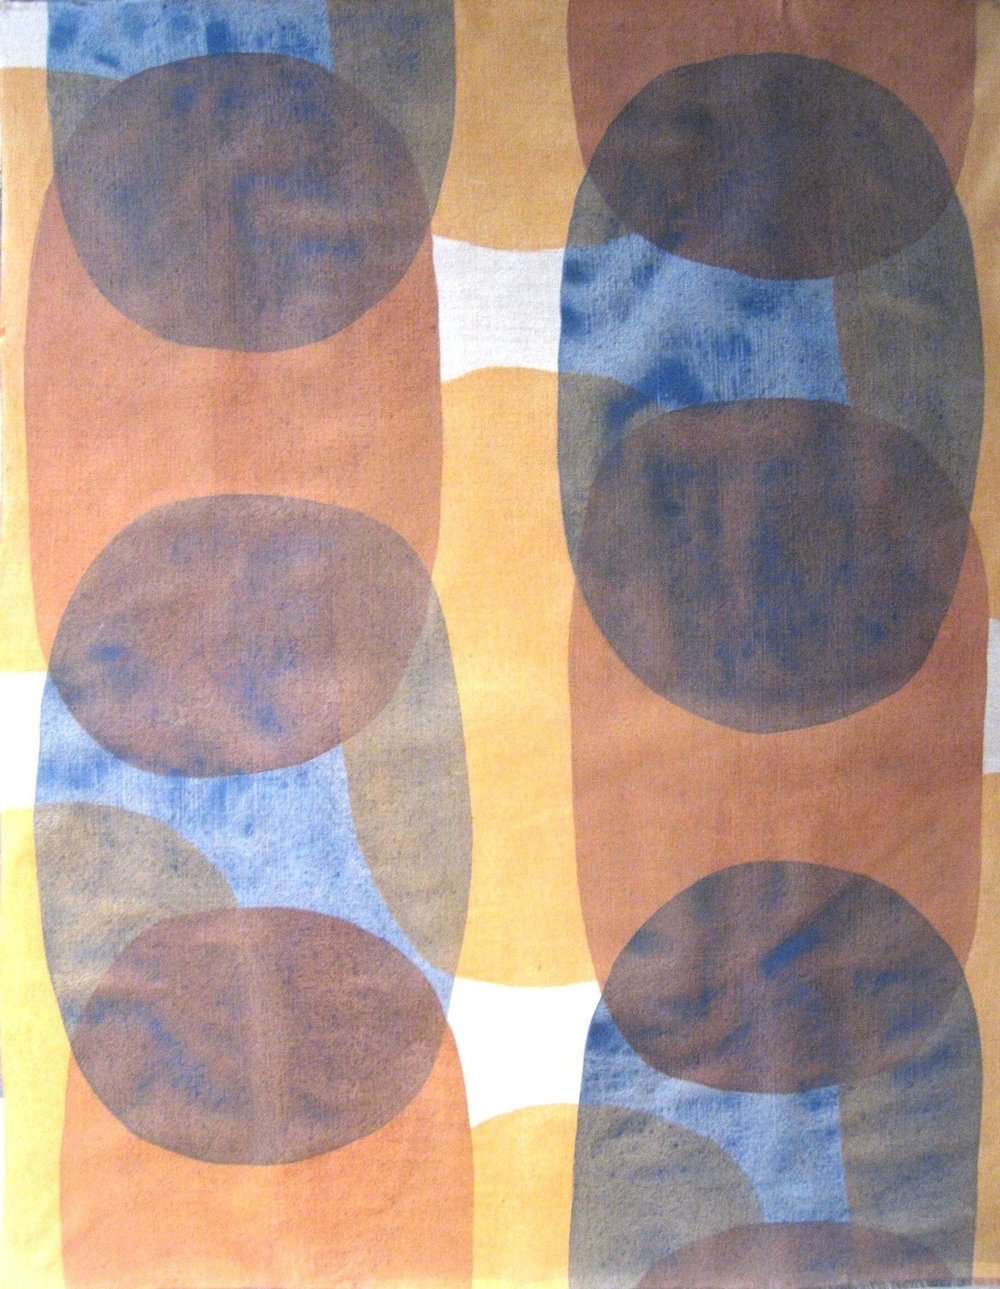 S. Sutro, Time and Timelessness #32, Acrylic on Linen, 2012.JPG